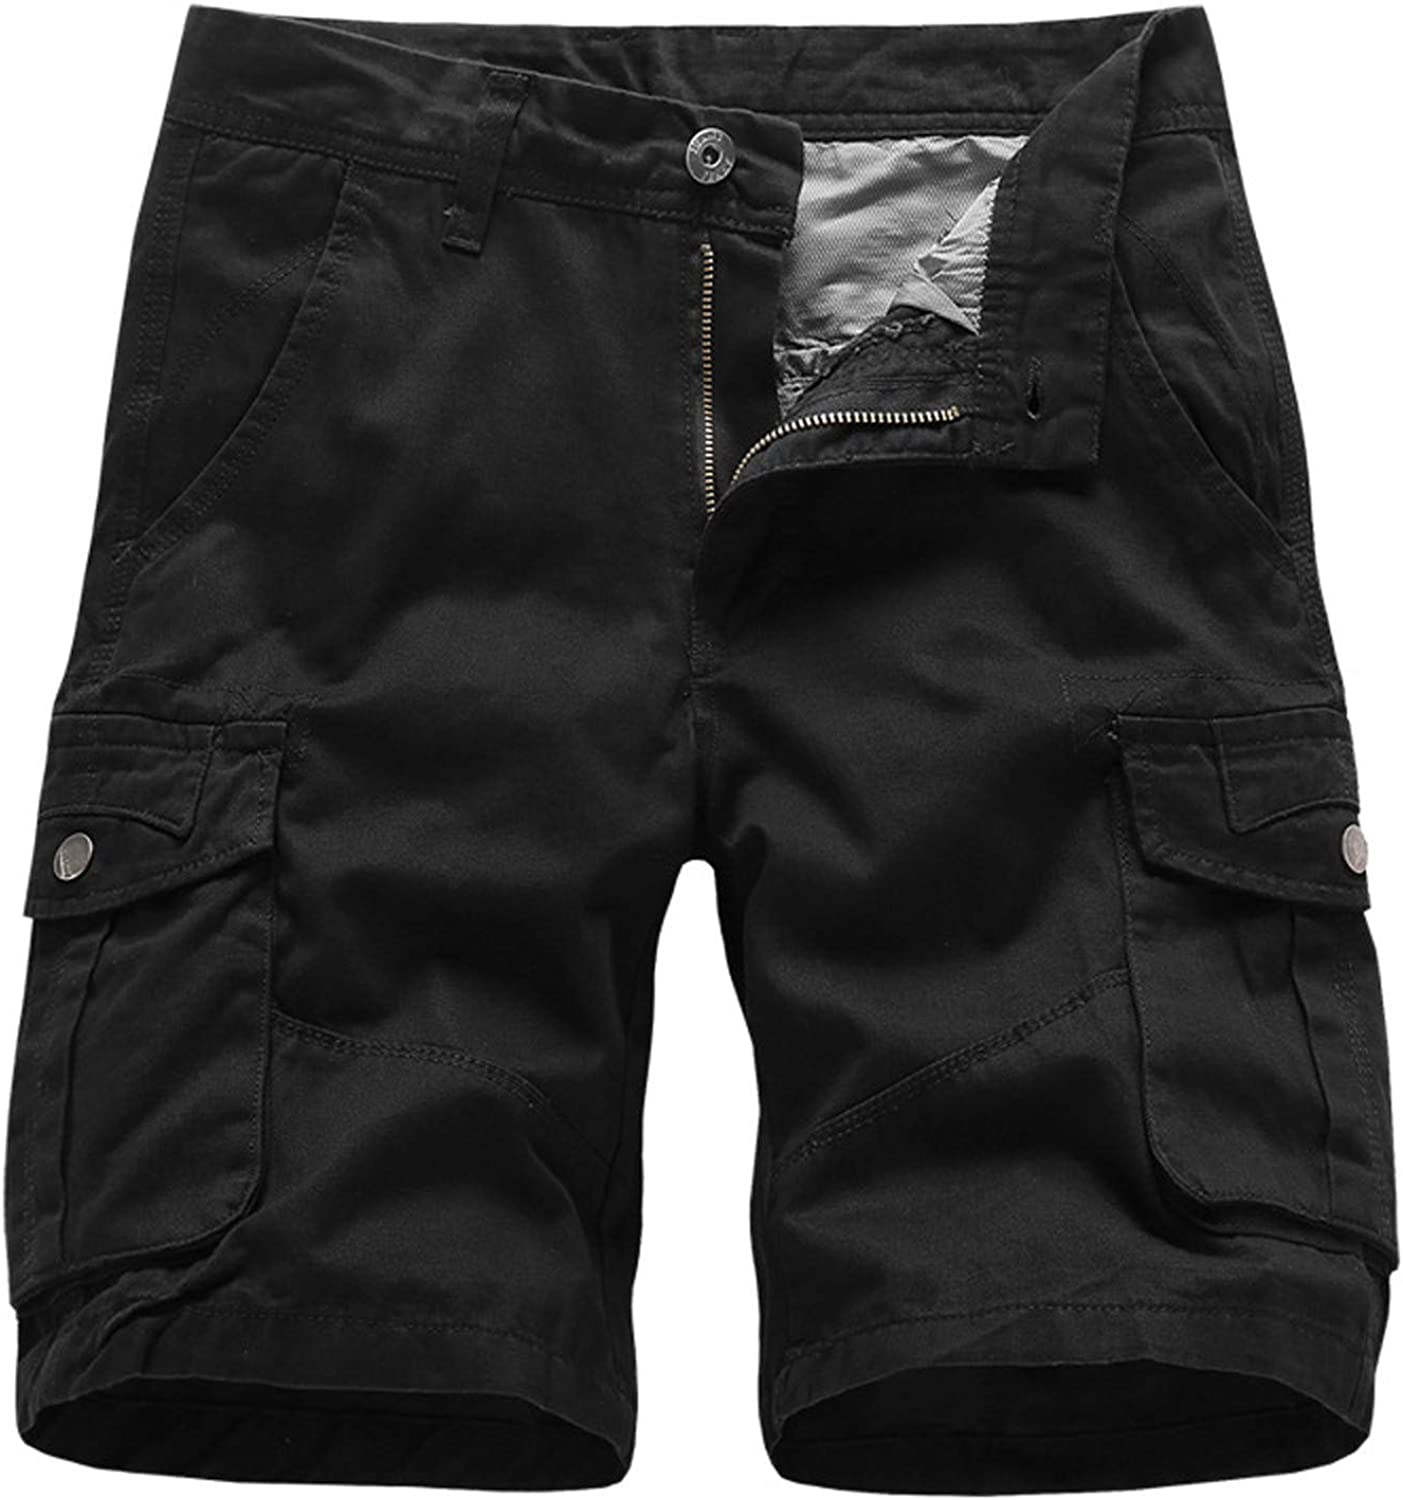 YYCHUN Men's Multi-Pockets Cargo Shorts Camo Relaxed Fit Casual Tactical Shorts Flat Front Outdoor Lightweight Work Shorts